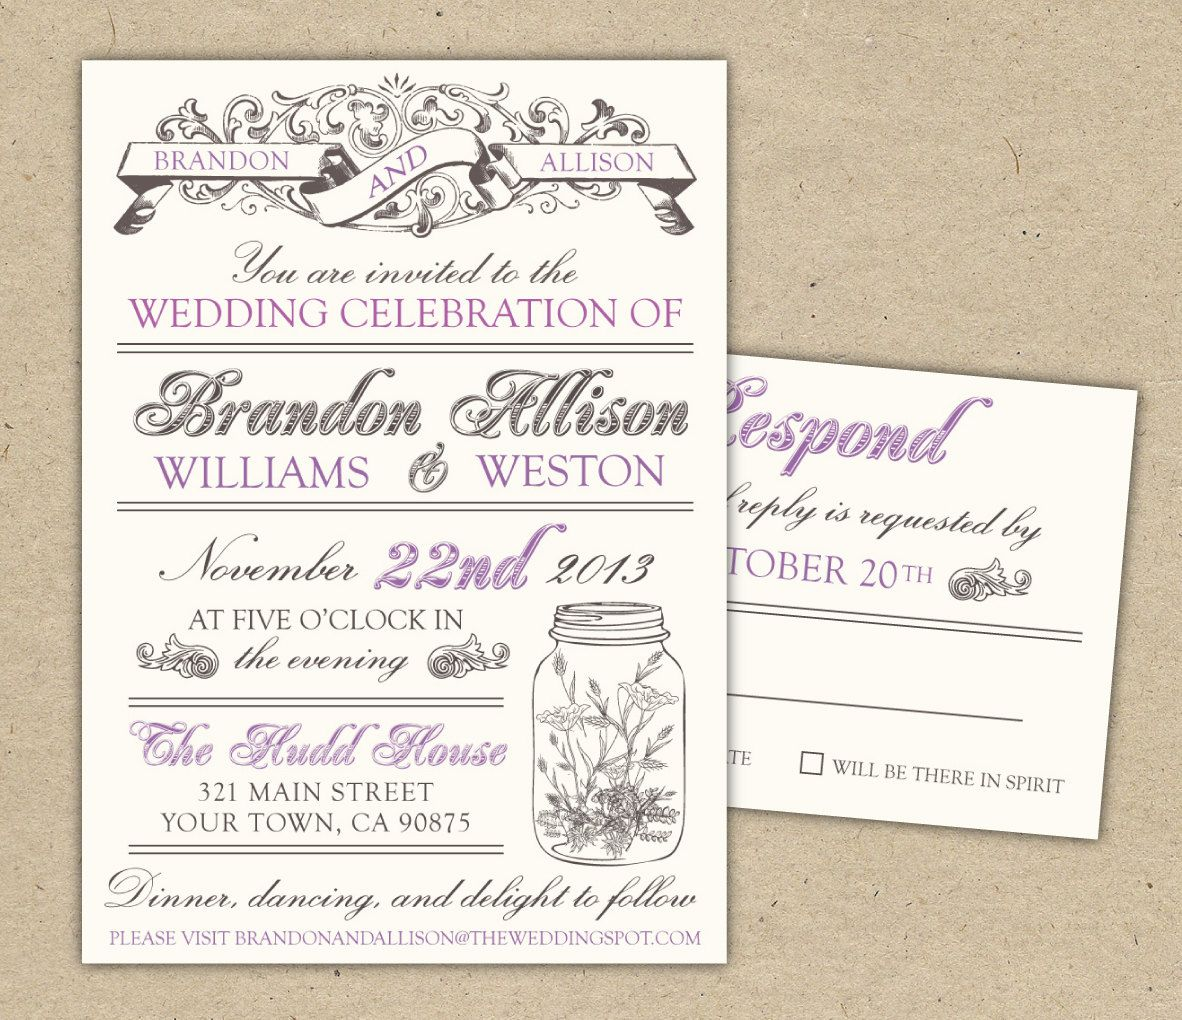 Free Templates For Invitations Free Printable Vintage Wedding - Wedding invitation templates: wedding card invitation templates free download